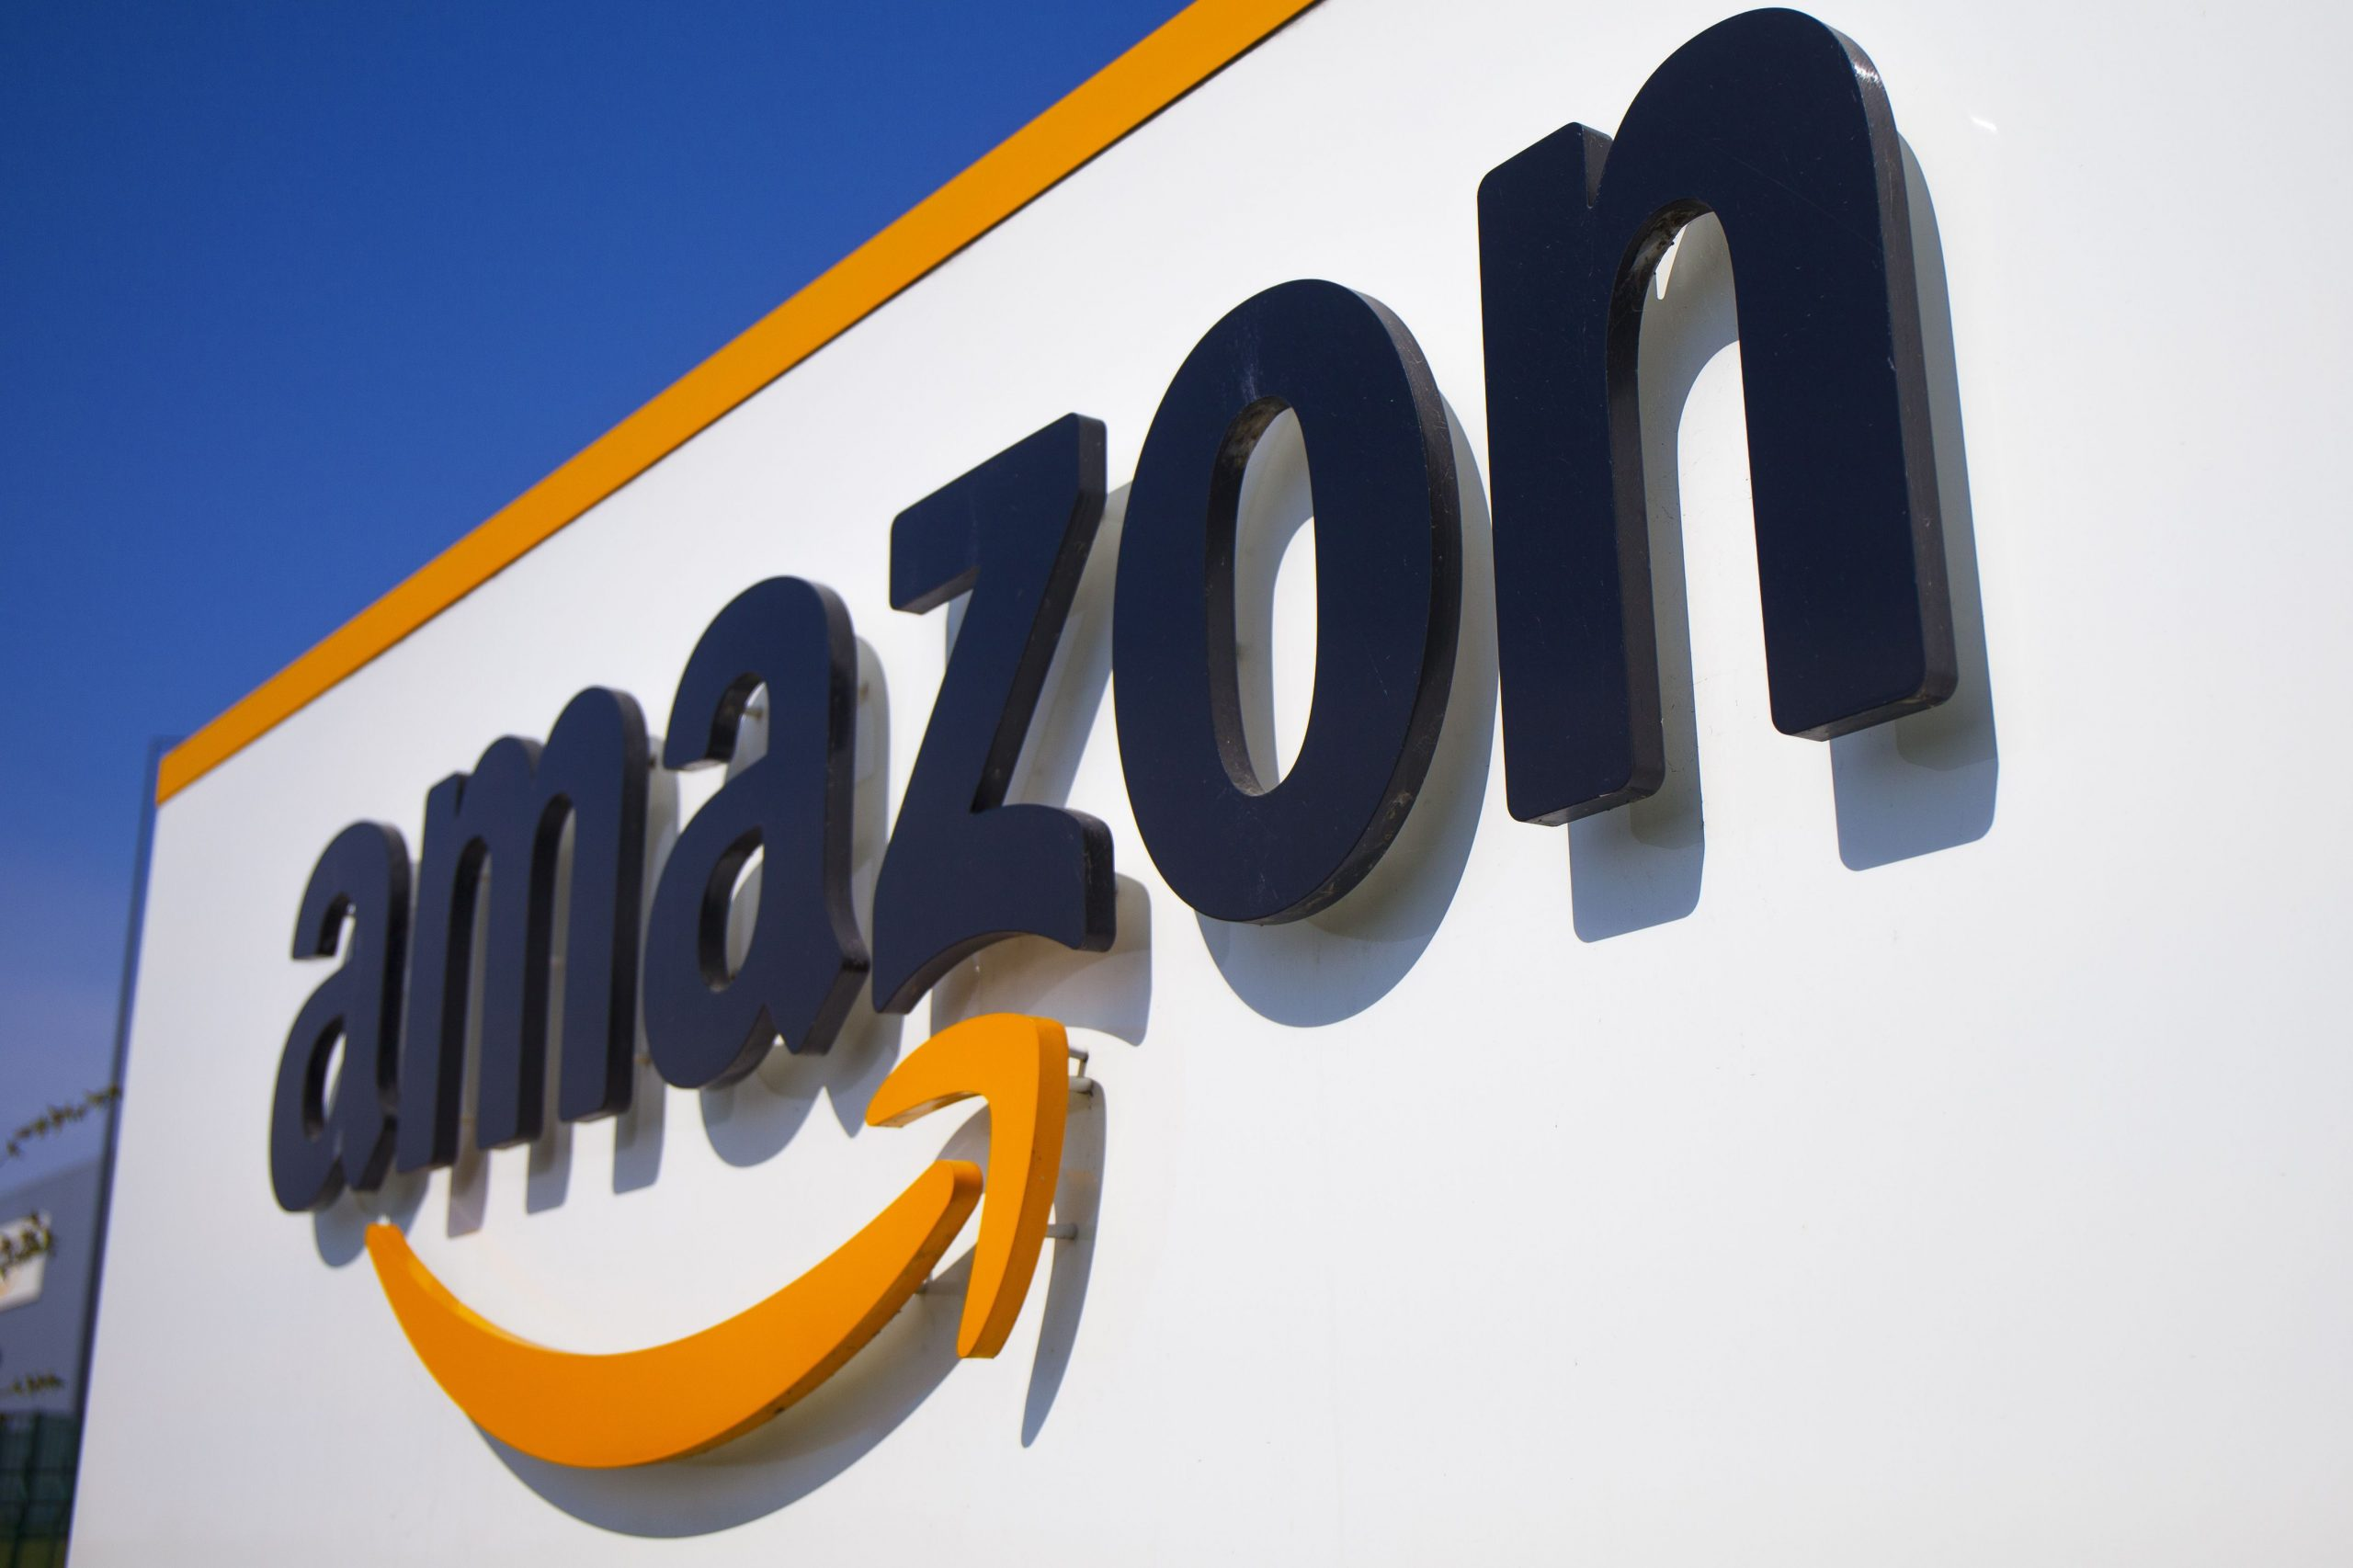 Amazon says it will allow employees to work from home until June